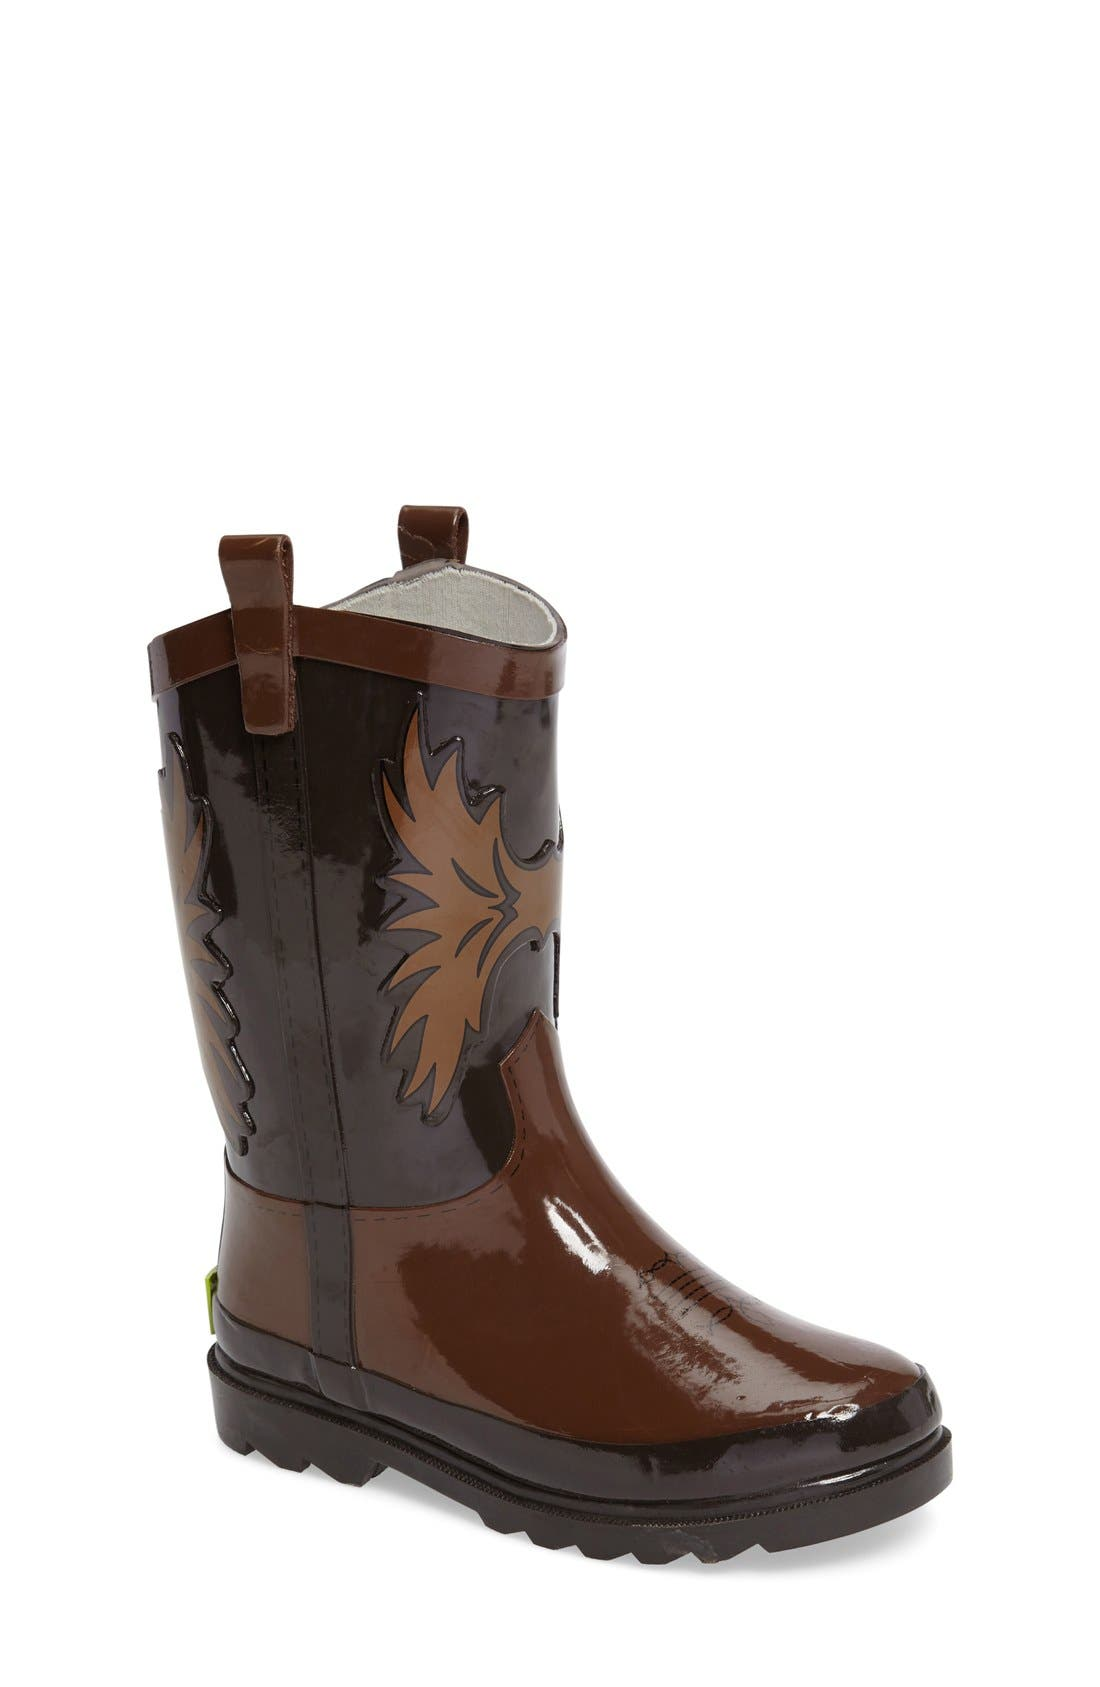 Western Chief Cowboy Waterproof Rain Boot (Walker, Toddler, Little Kid & Big Kid)